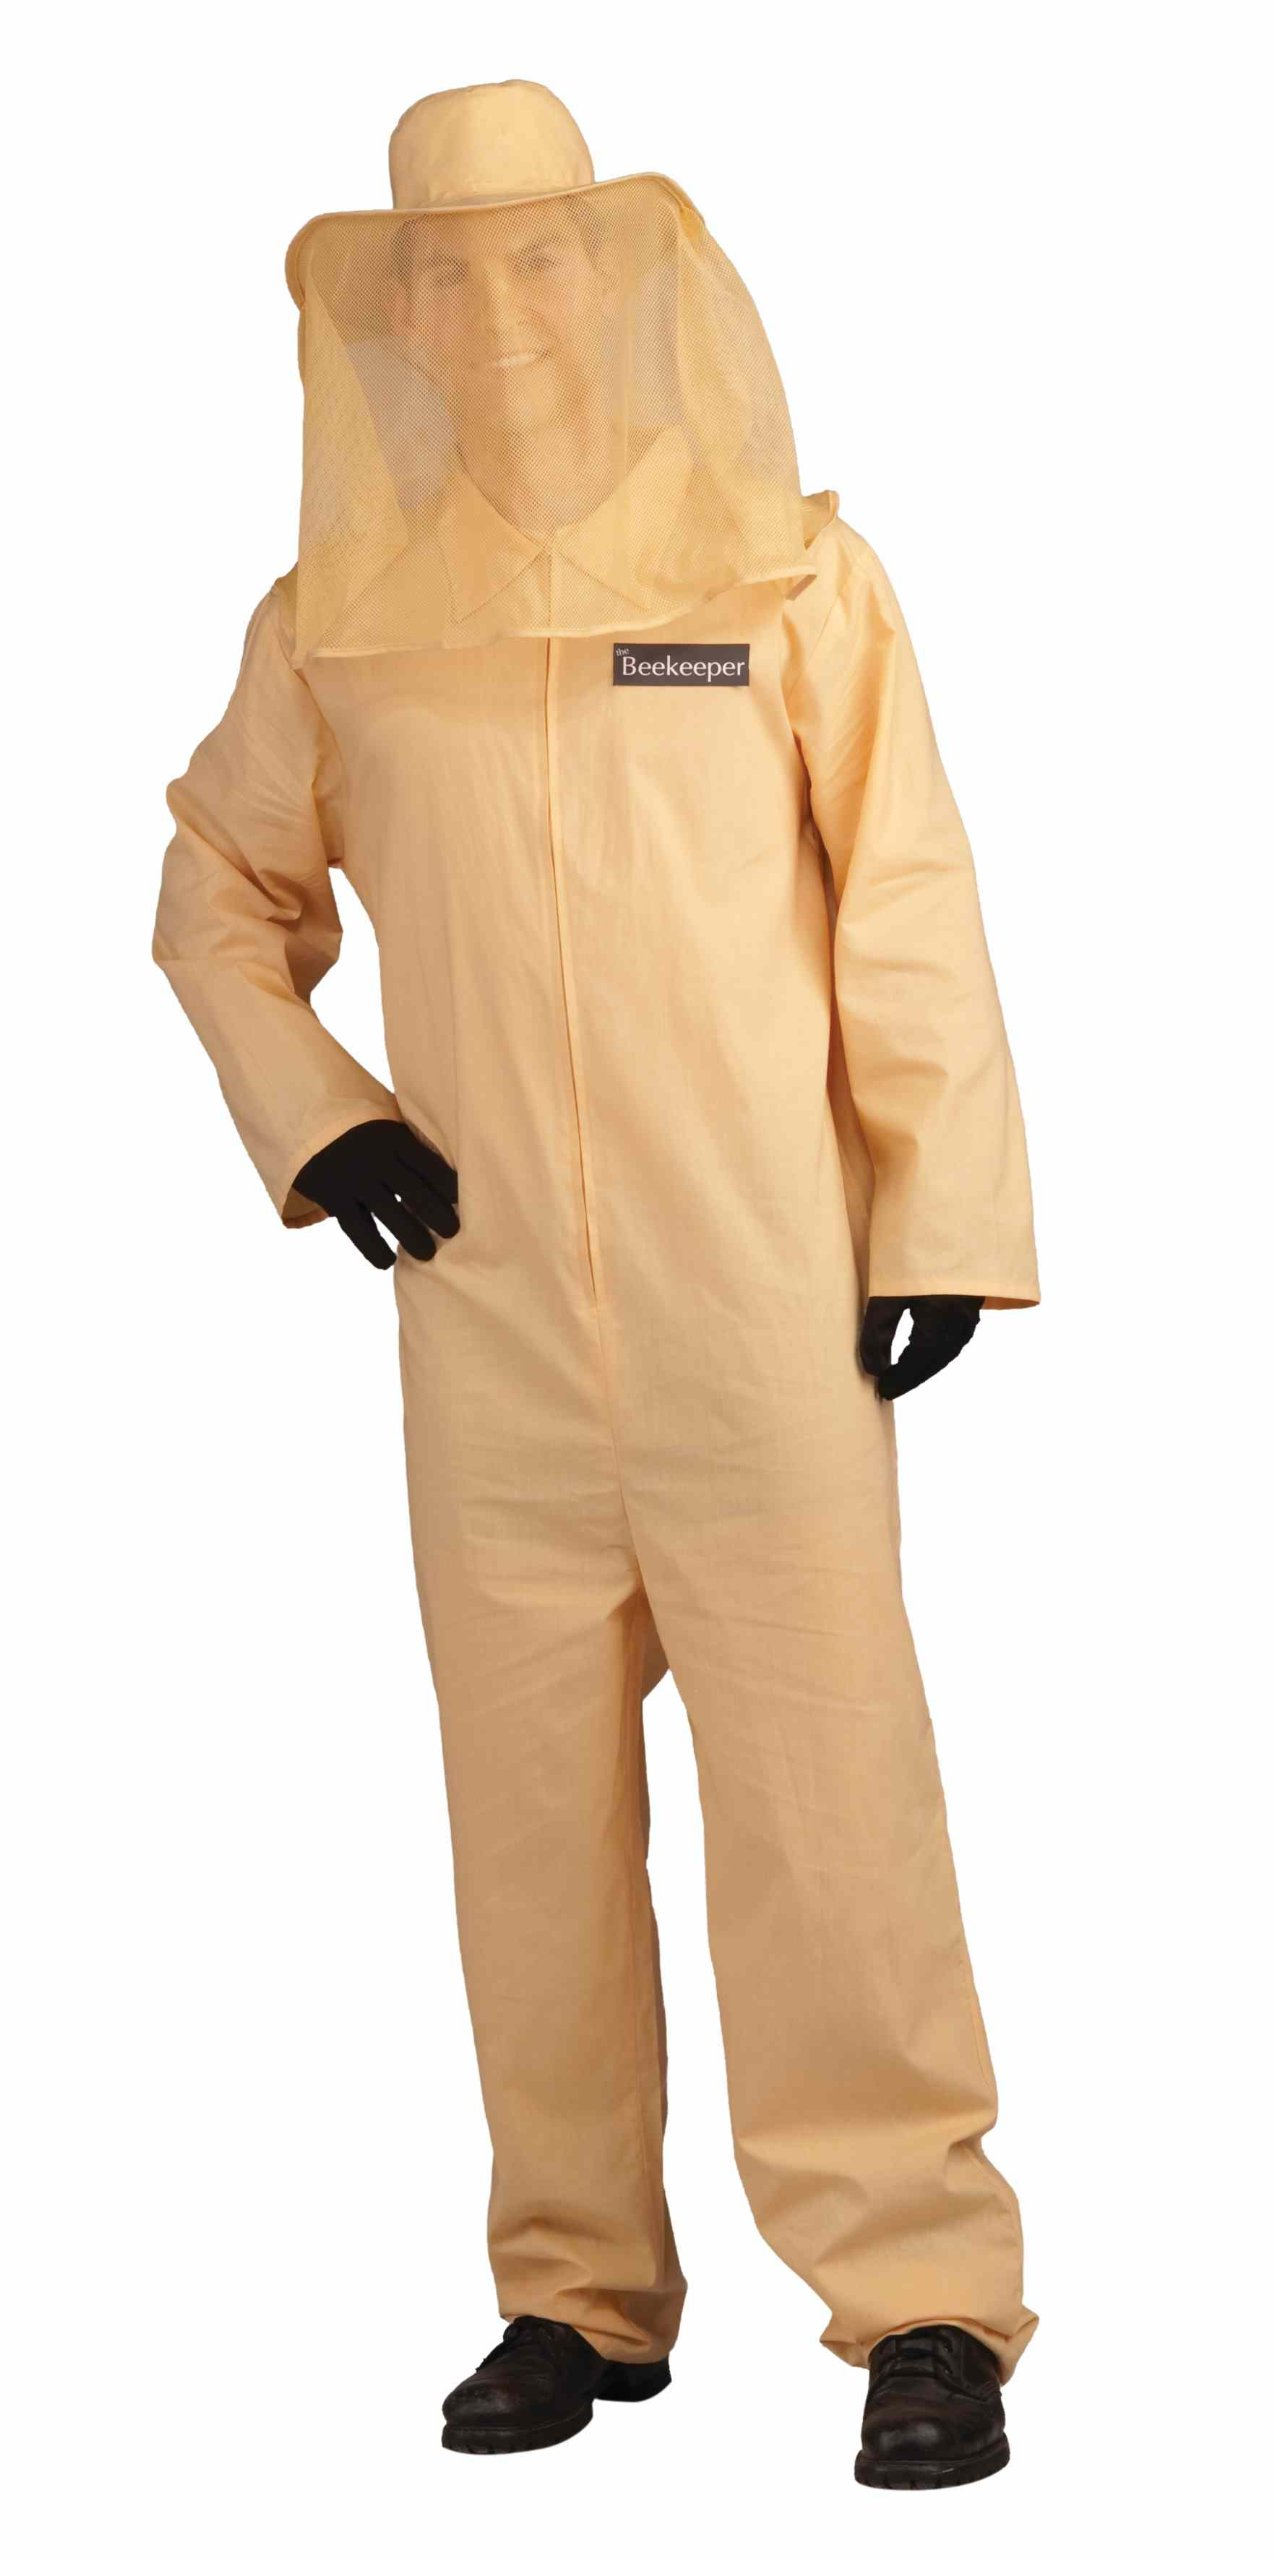 Unisex - Adult Bee Keeper Costume, Beige, One Size